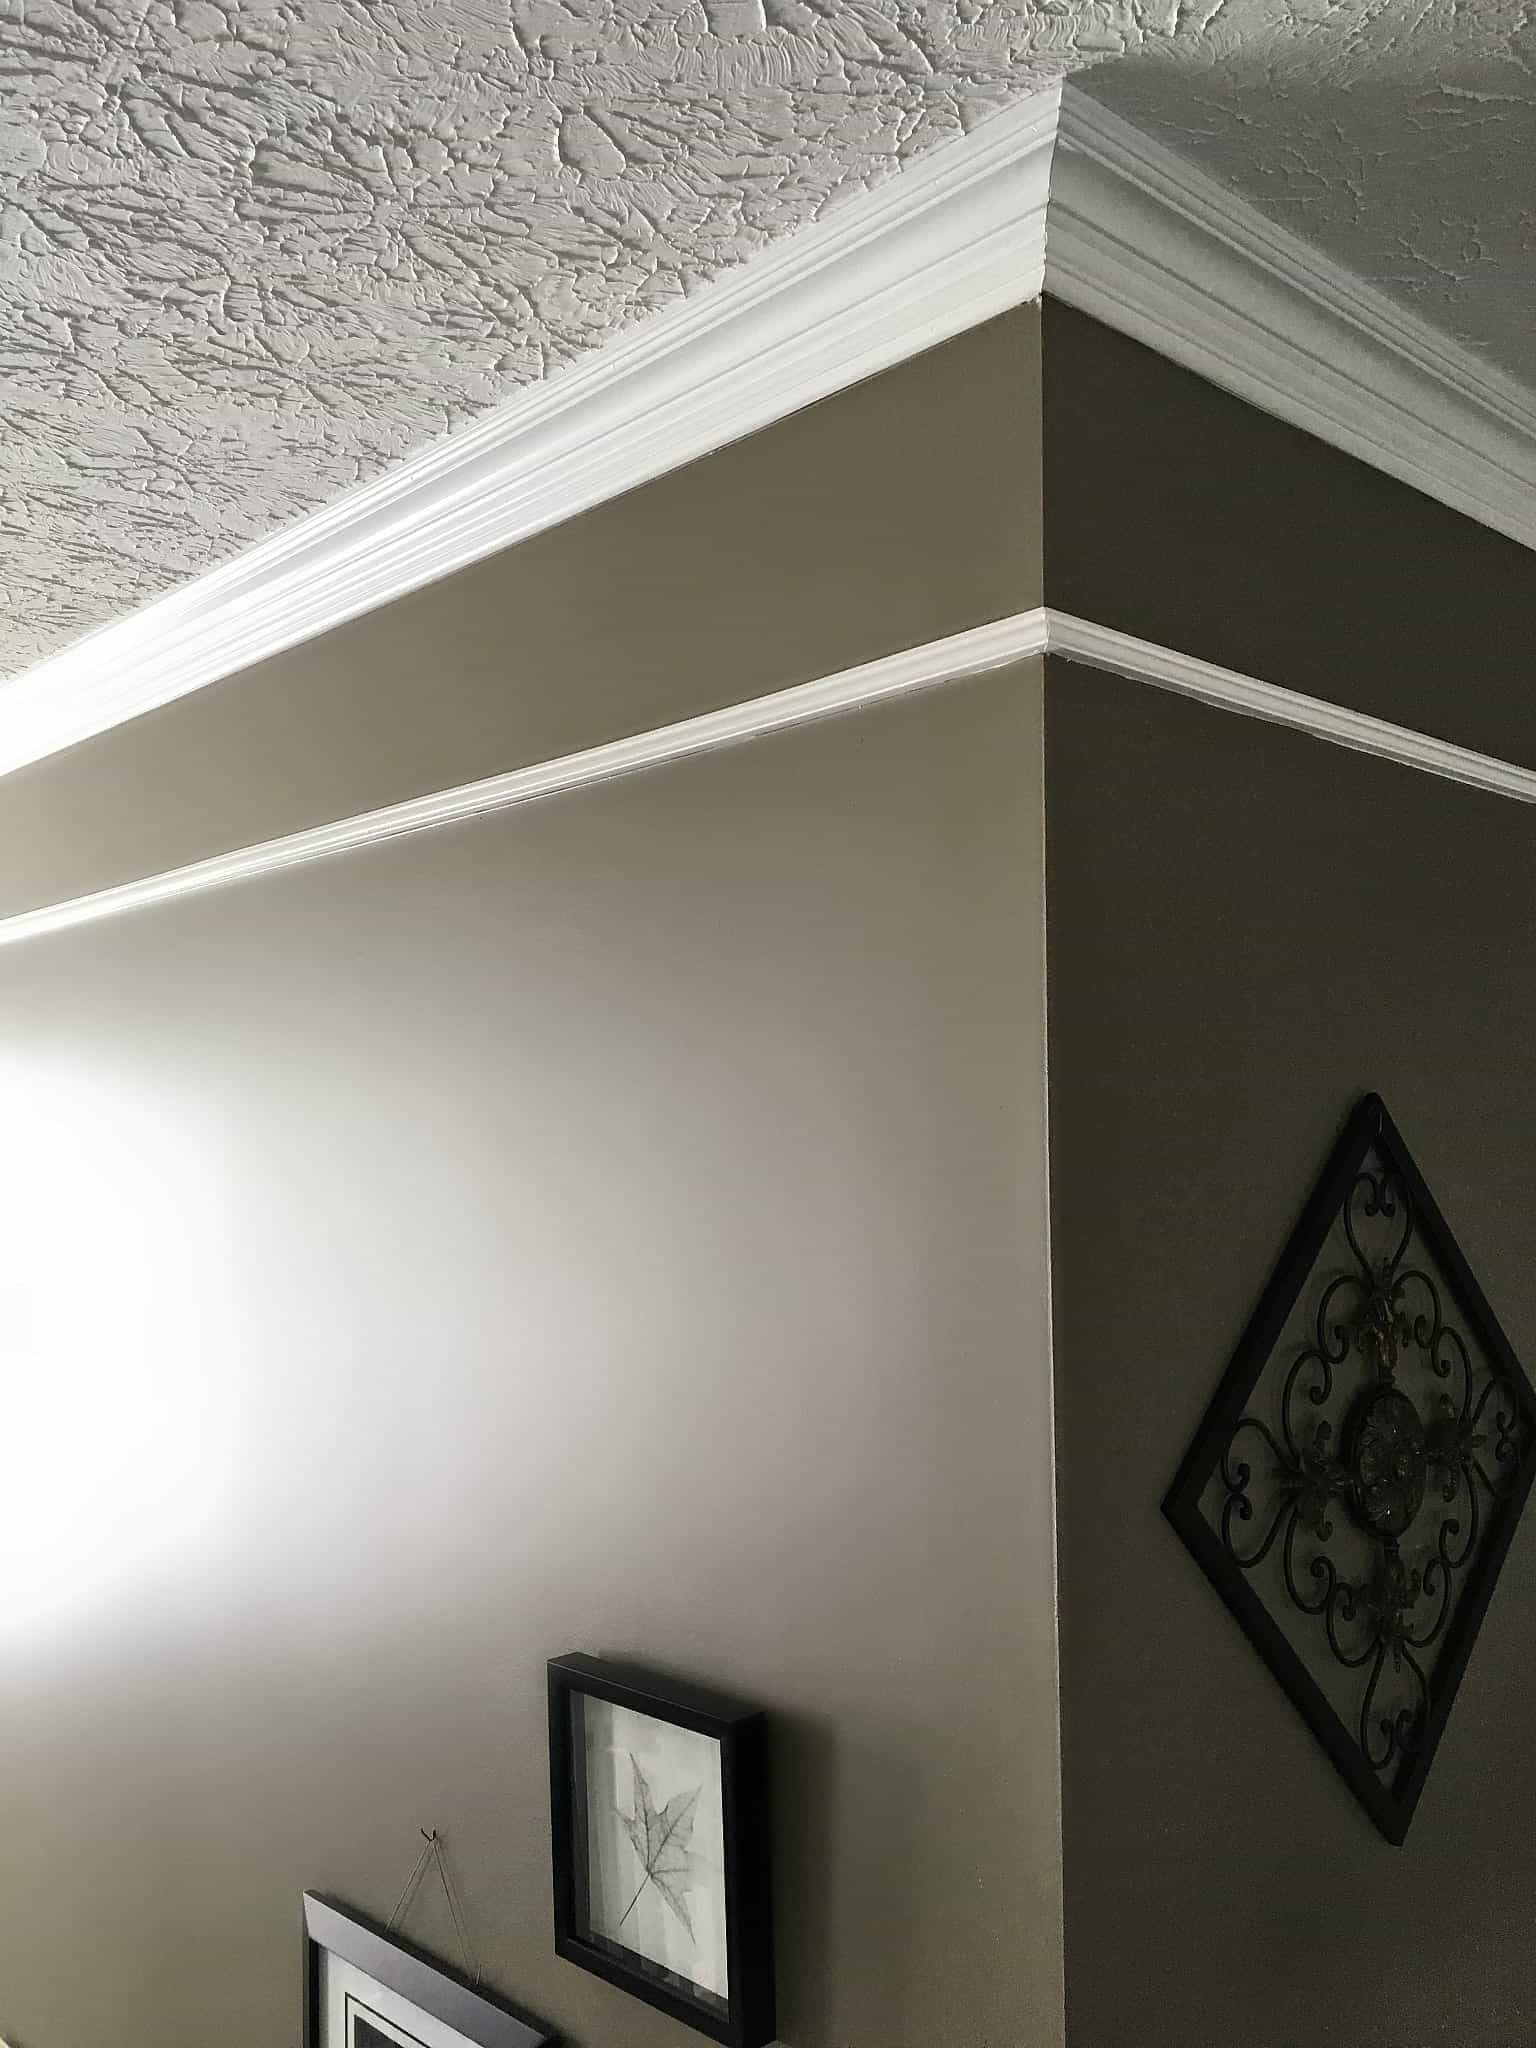 Faux Frieze Molding in Foyer